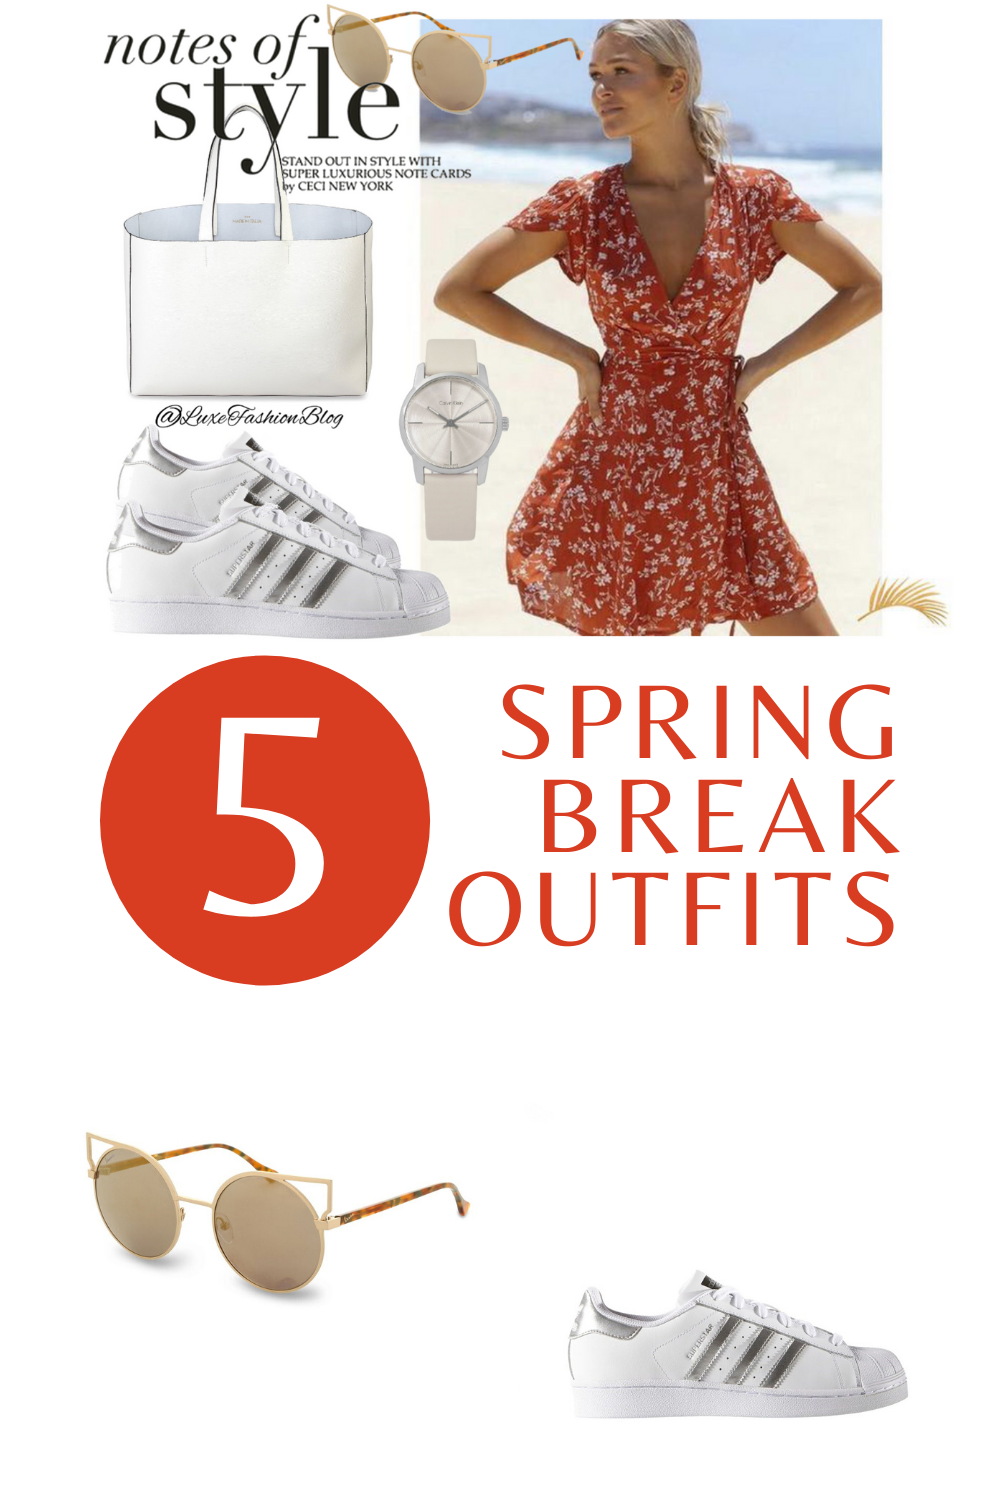 5 Spring Break Outfits & Accessories You Totally Need | Spring Break Outfit Ideas | Red Dress